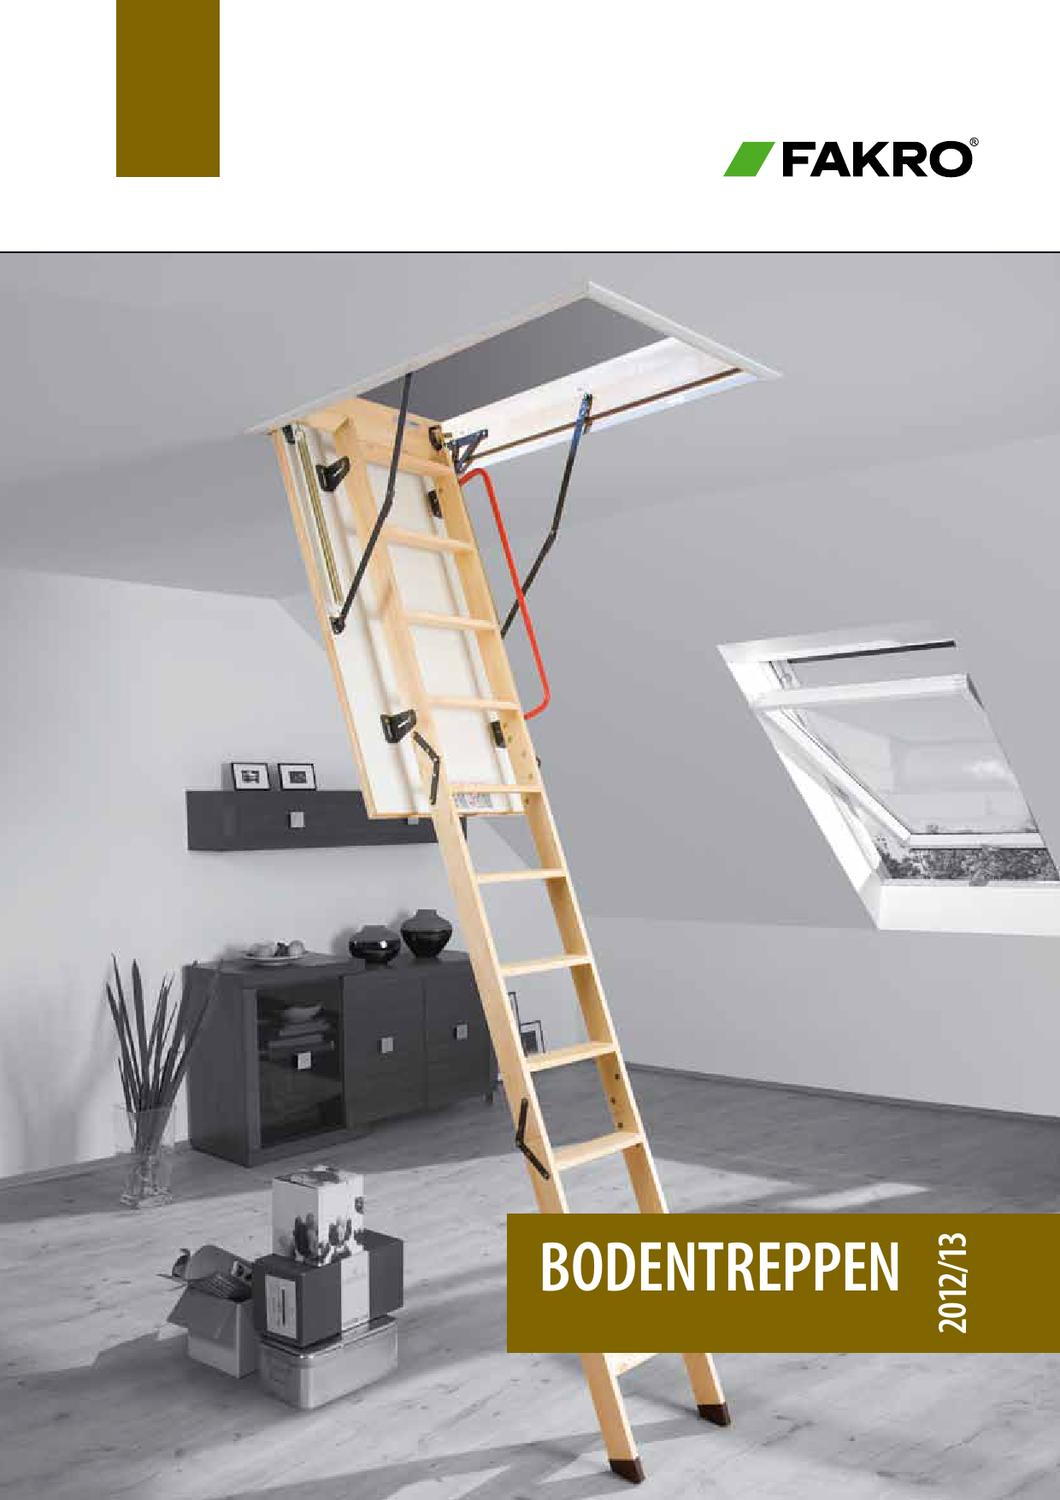 Dachbodentreppe Gedämmte Bodentreppe Dachtreppe EINFACHE MONTAGE LWS SMART